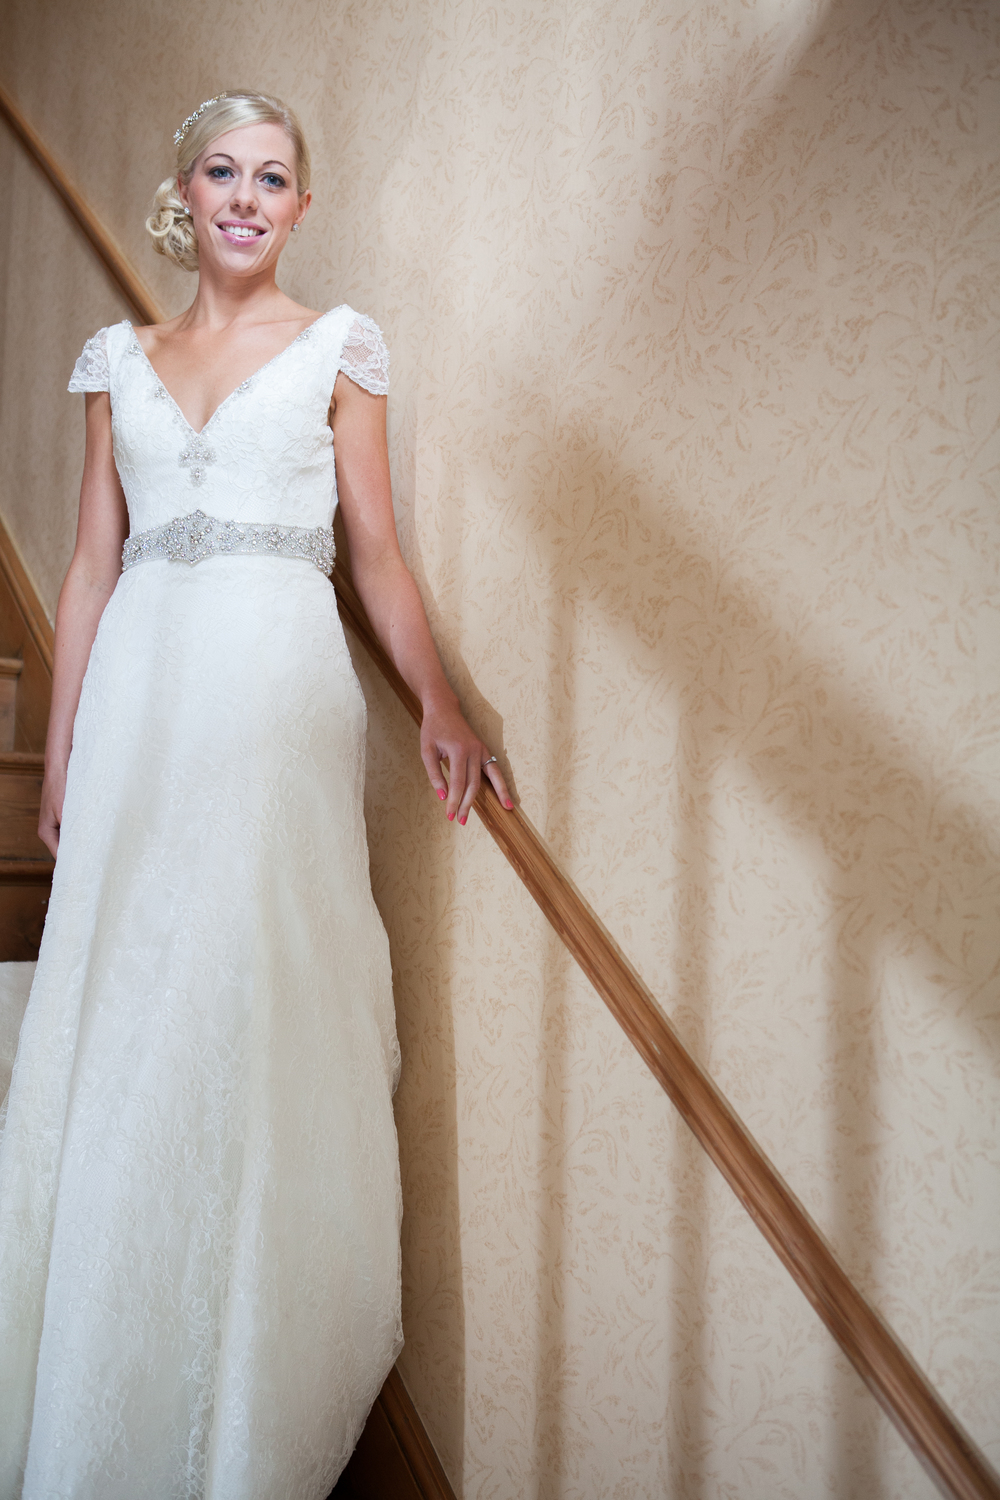 Bridal portrait - wedding photographers derby